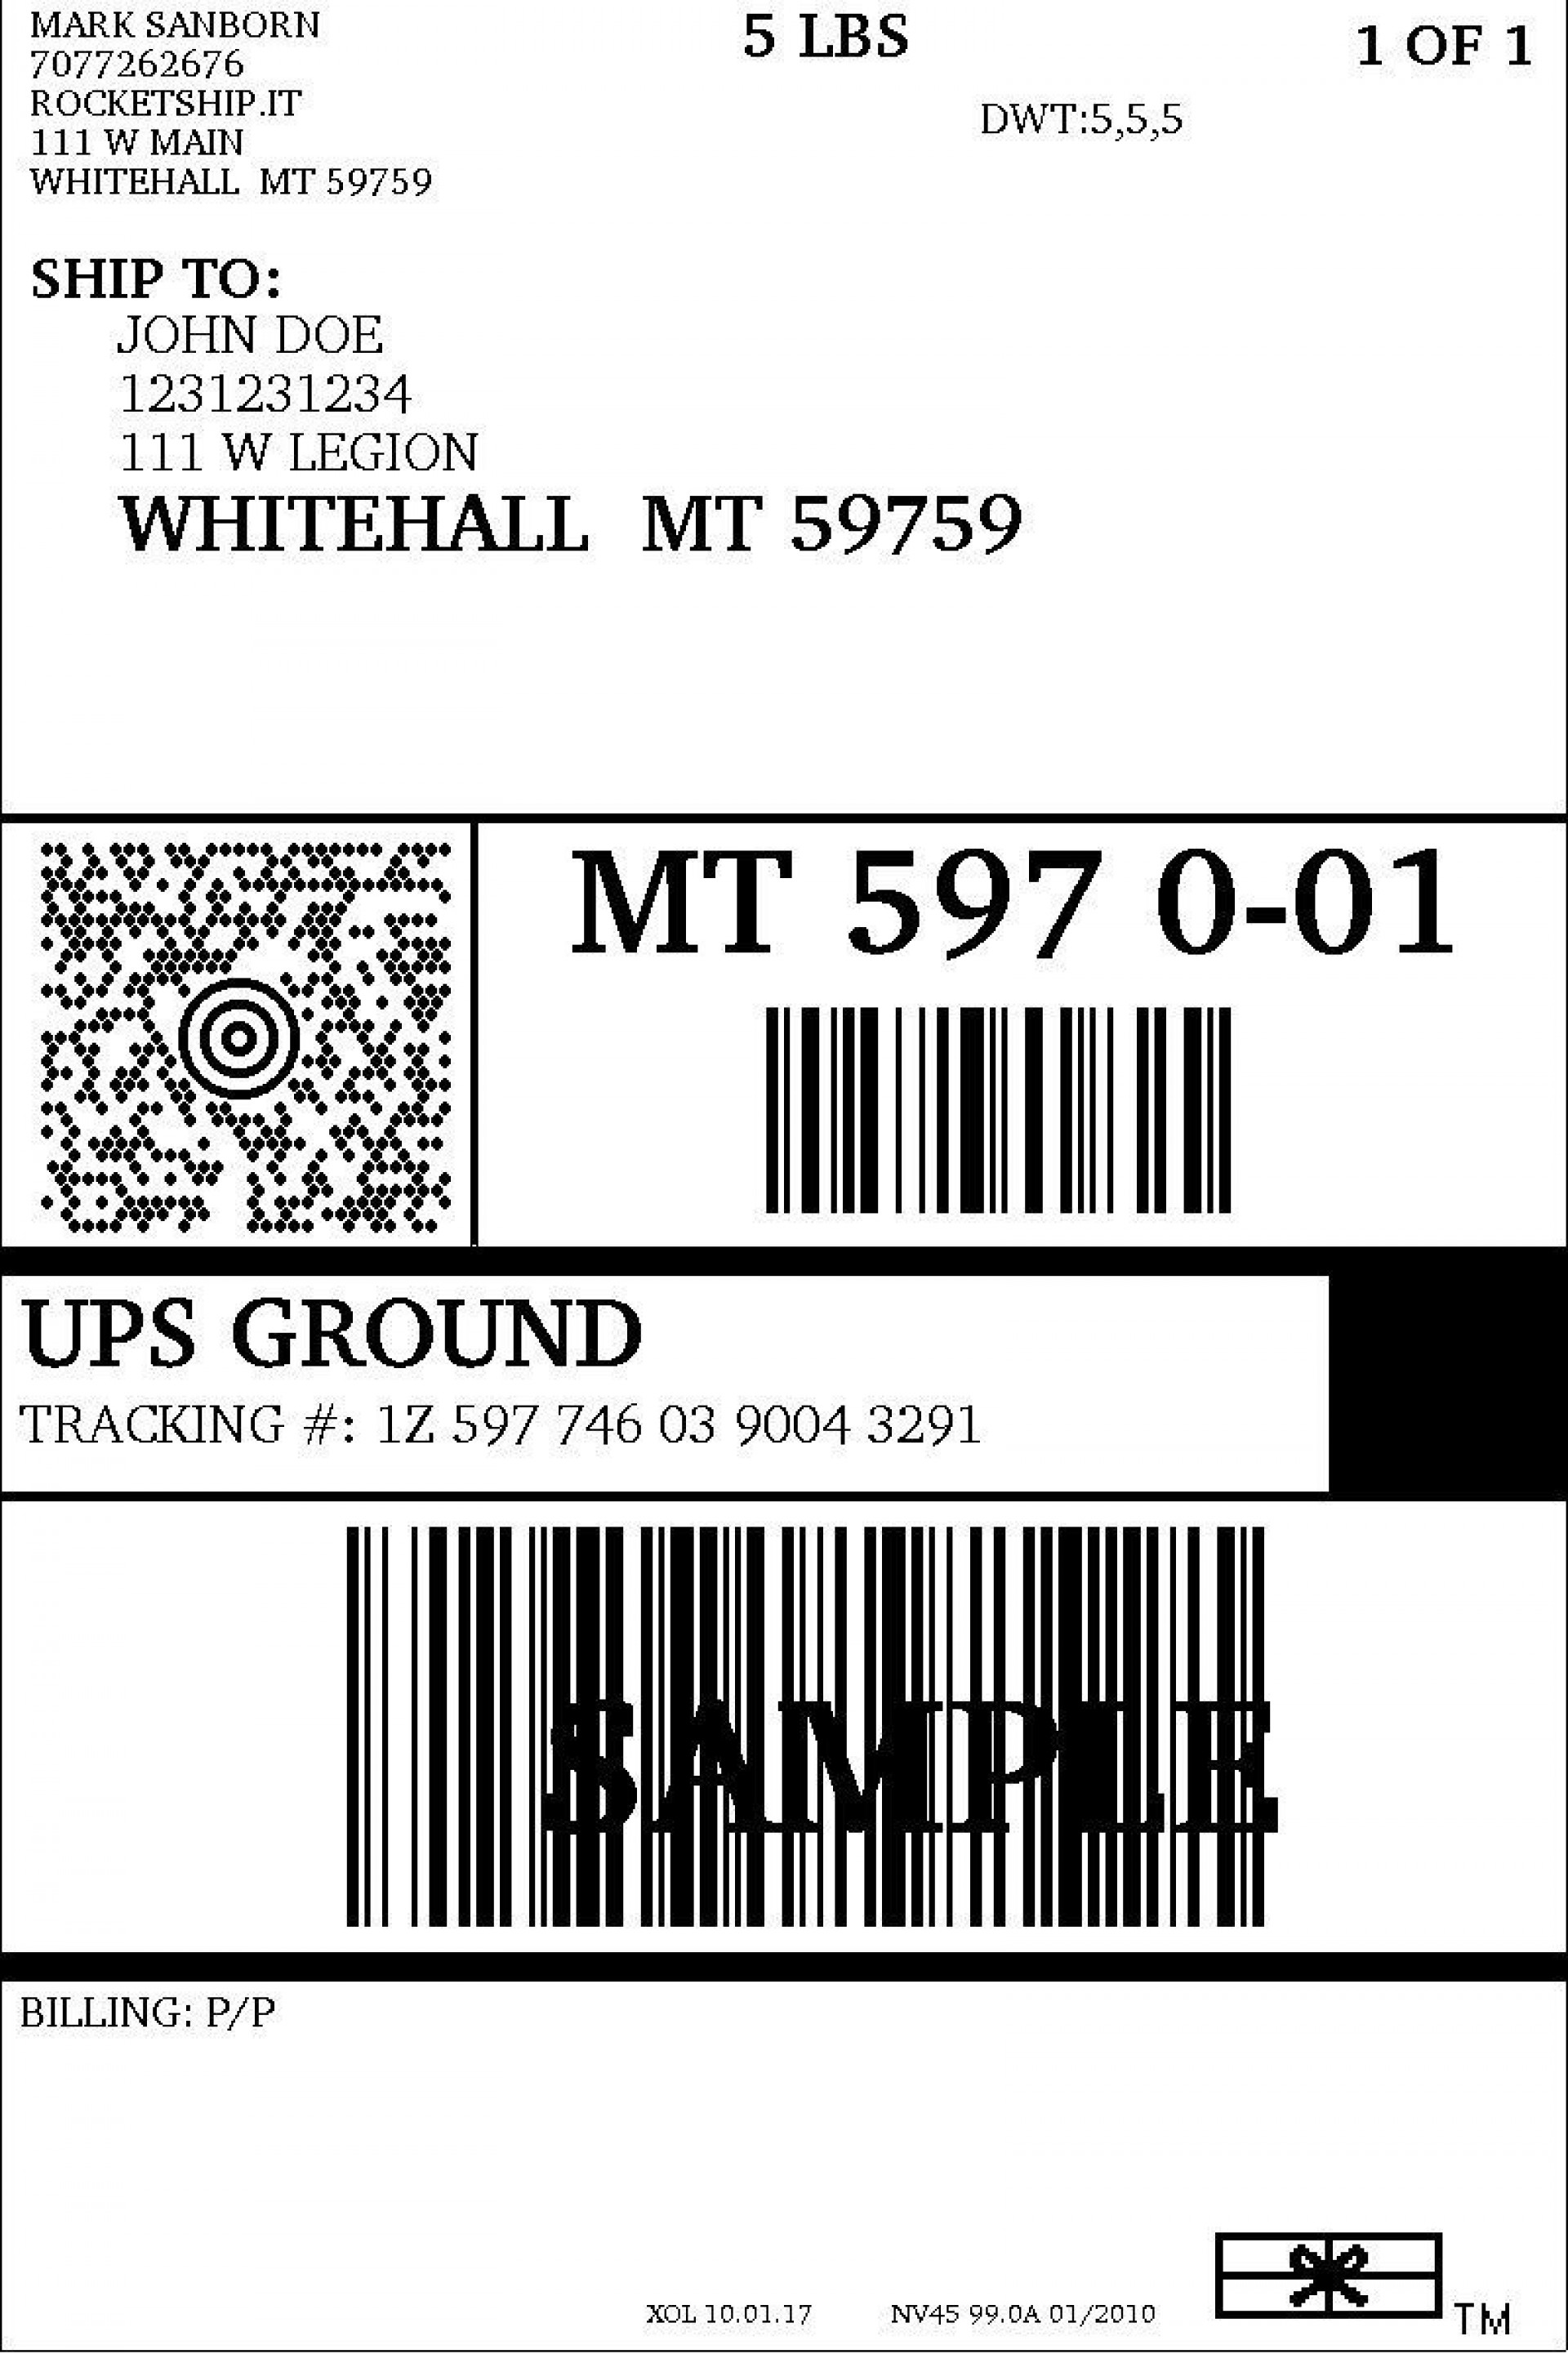 004 Phenomenal Up Shipping Label Template Free Example 1920